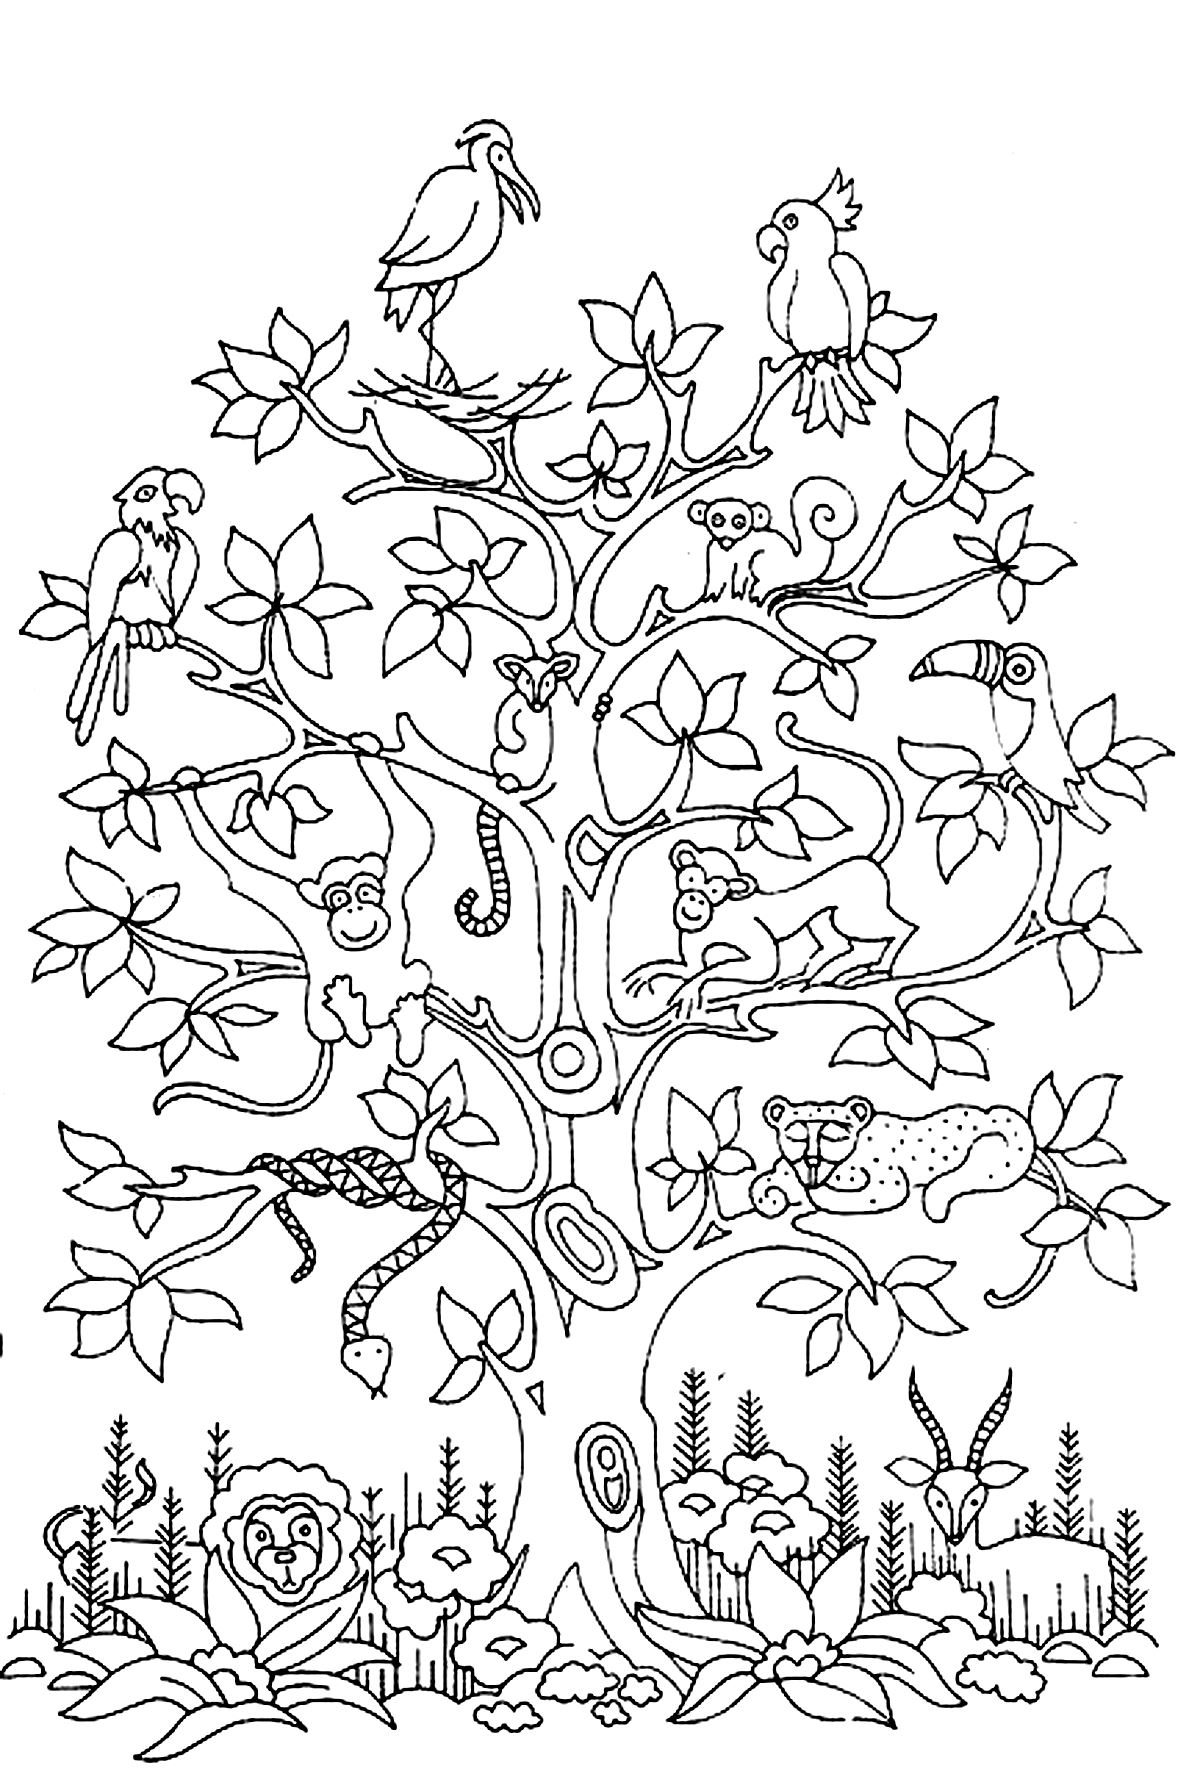 Tree Bird butterflies Snake Monkey butterflies & Insects Adult Printable Of Apple Tree Coloring Page with Coloring Pages Apple orchard Download Download